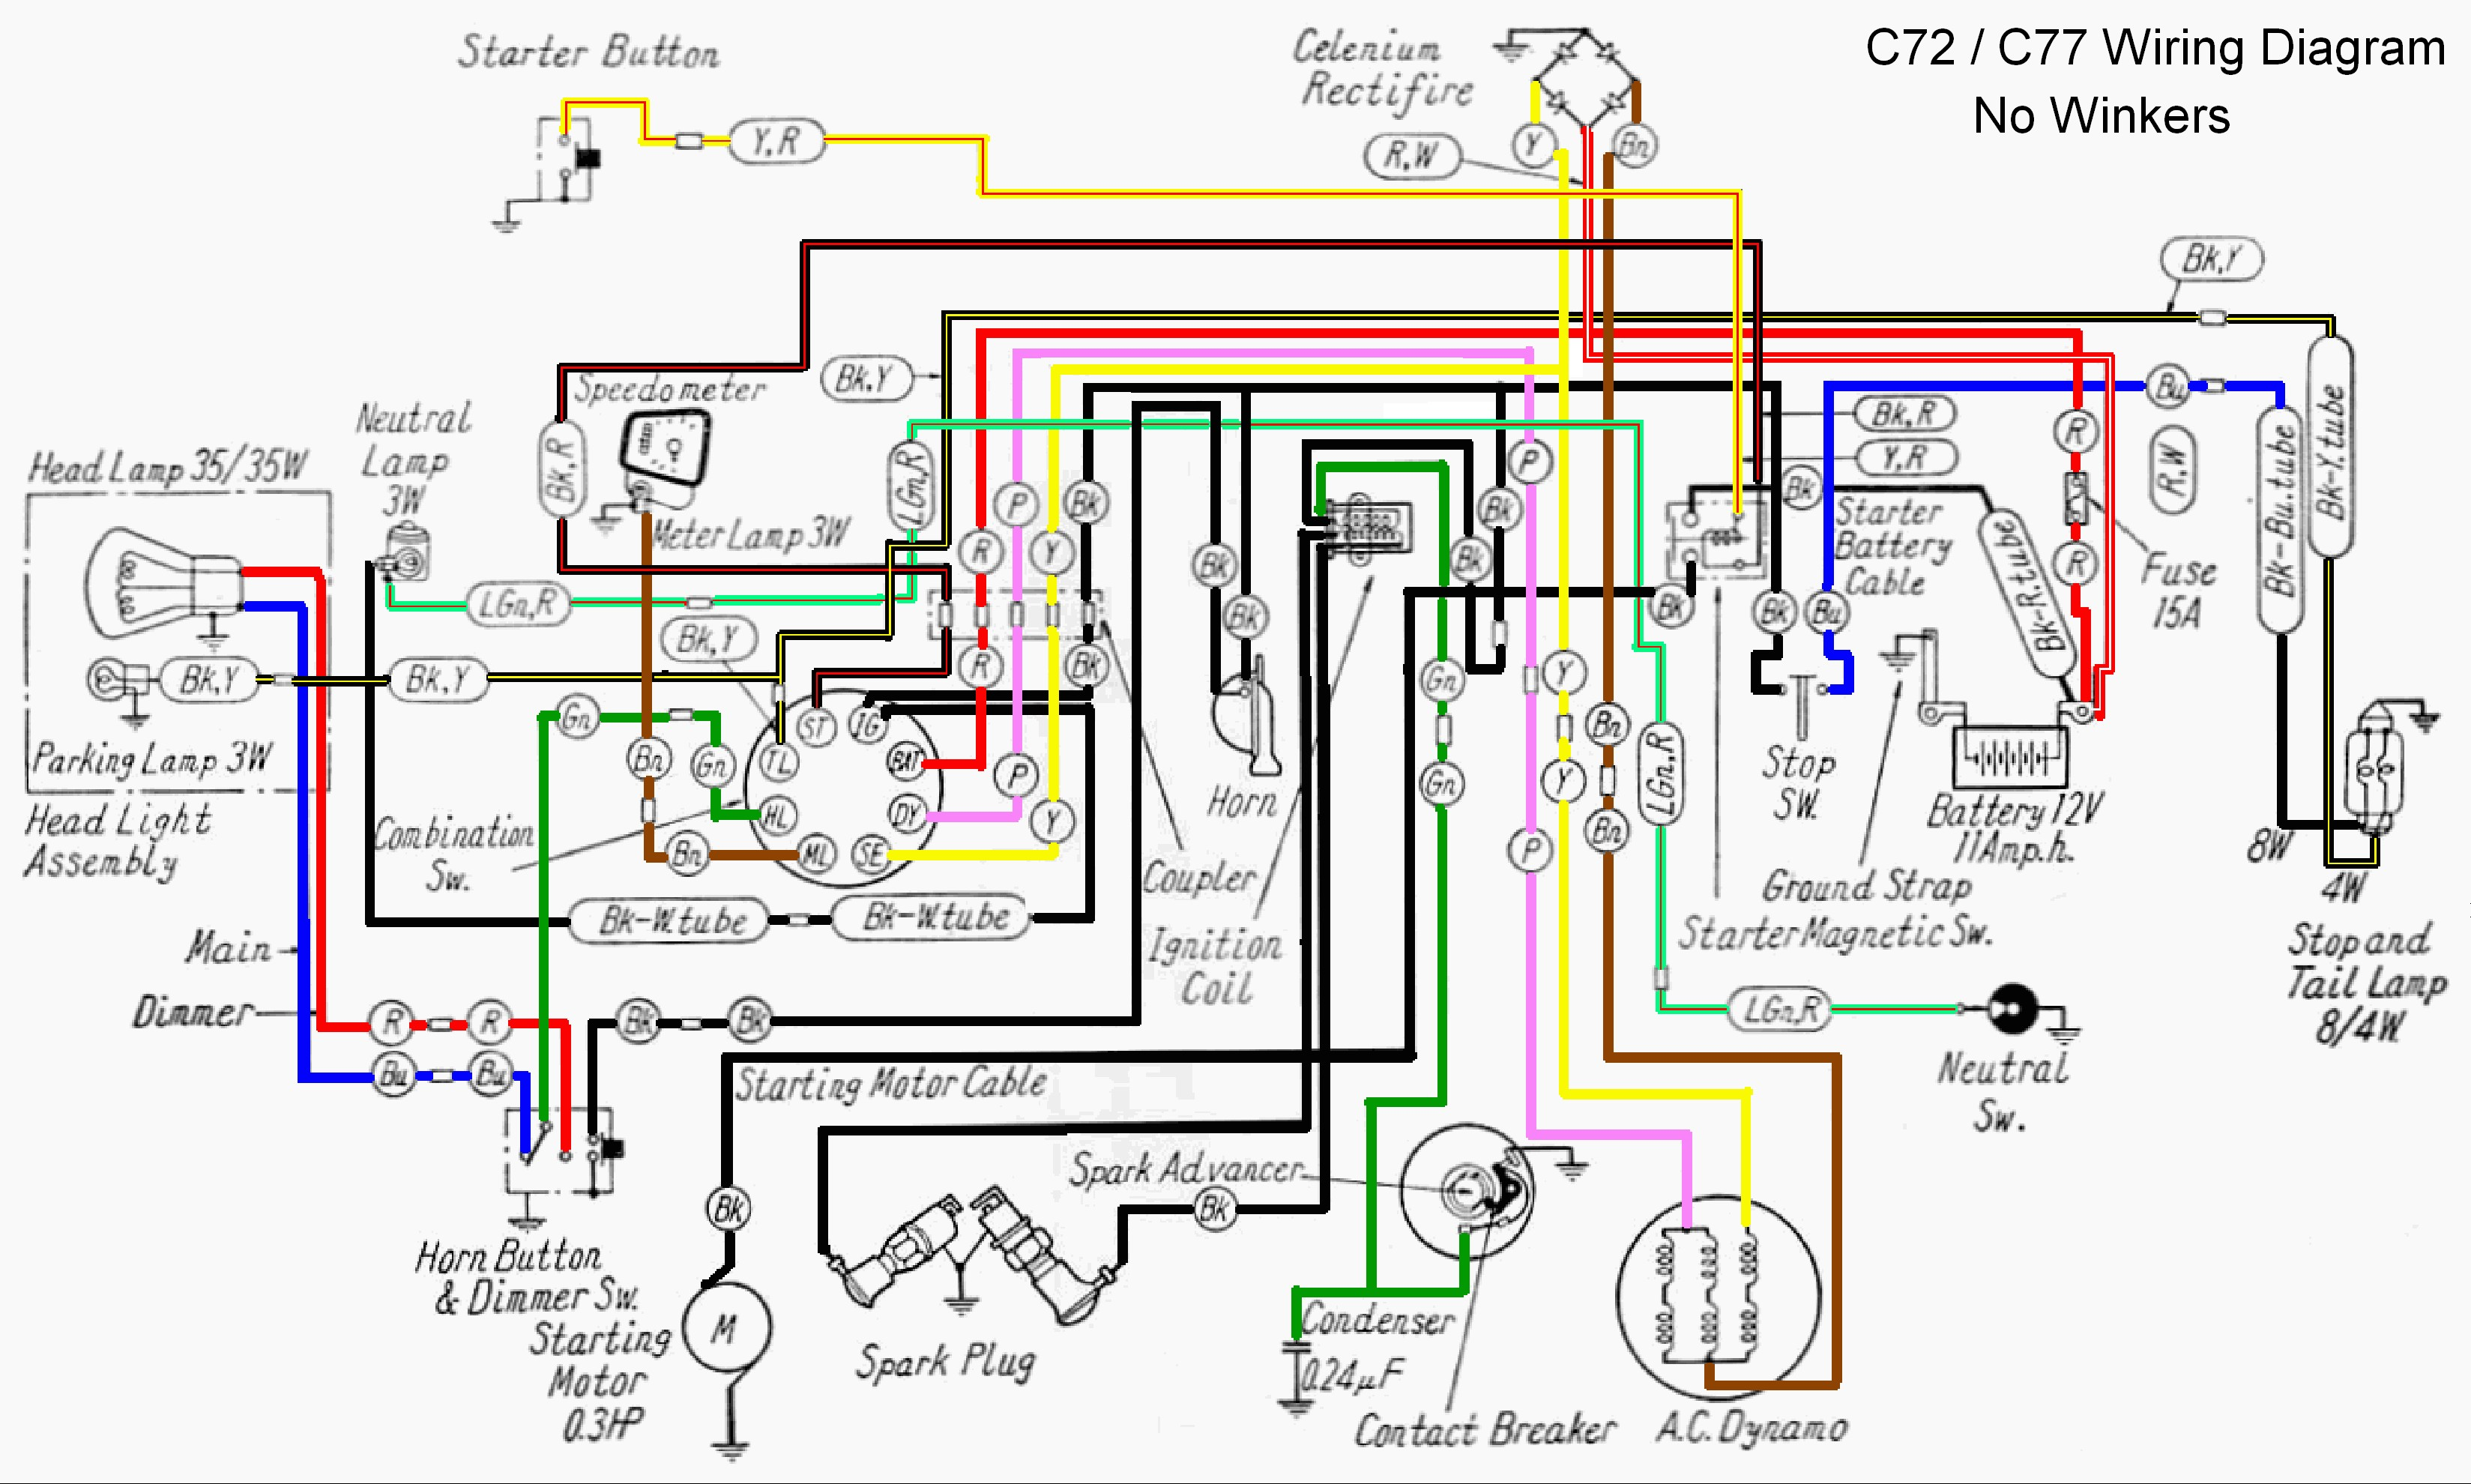 Xrm 125 engine diagram honda motorcycle wiring diagrams in addition honda motorcycle wiring diagrams in addition honda motorcycle wiring this particular photograph xrm 125 asfbconference2016 Choice Image